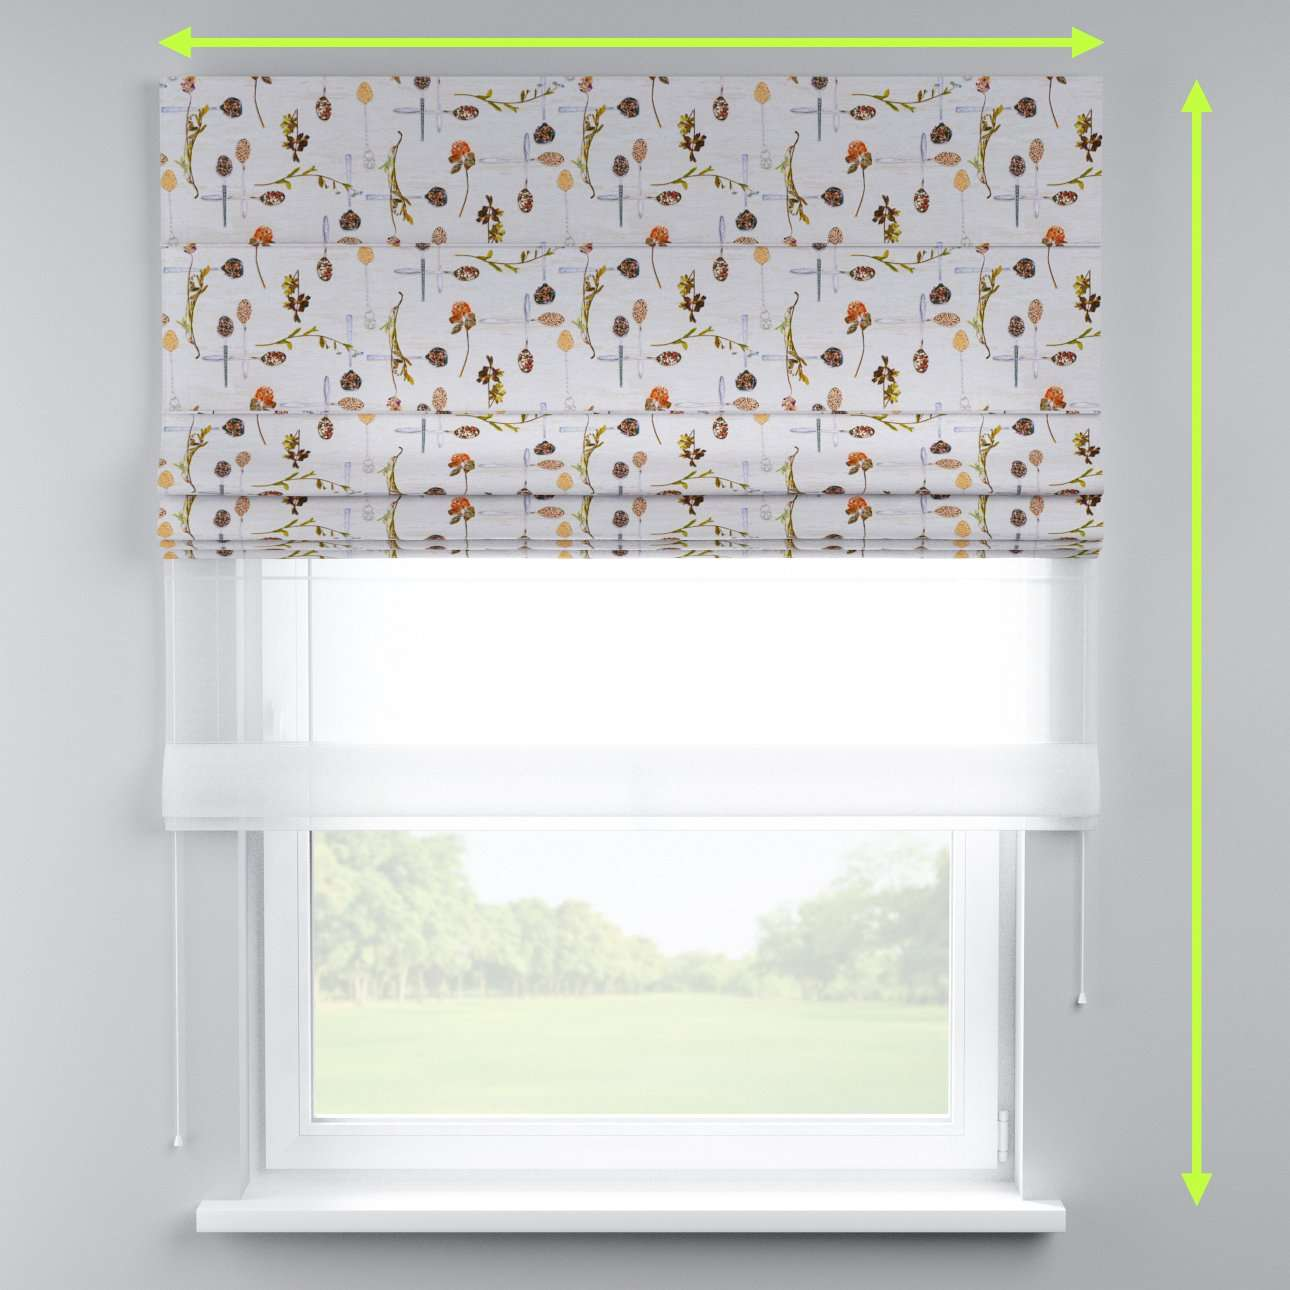 Voile and fabric roman blind (DUO II) in collection Flowers, fabric: 140-11